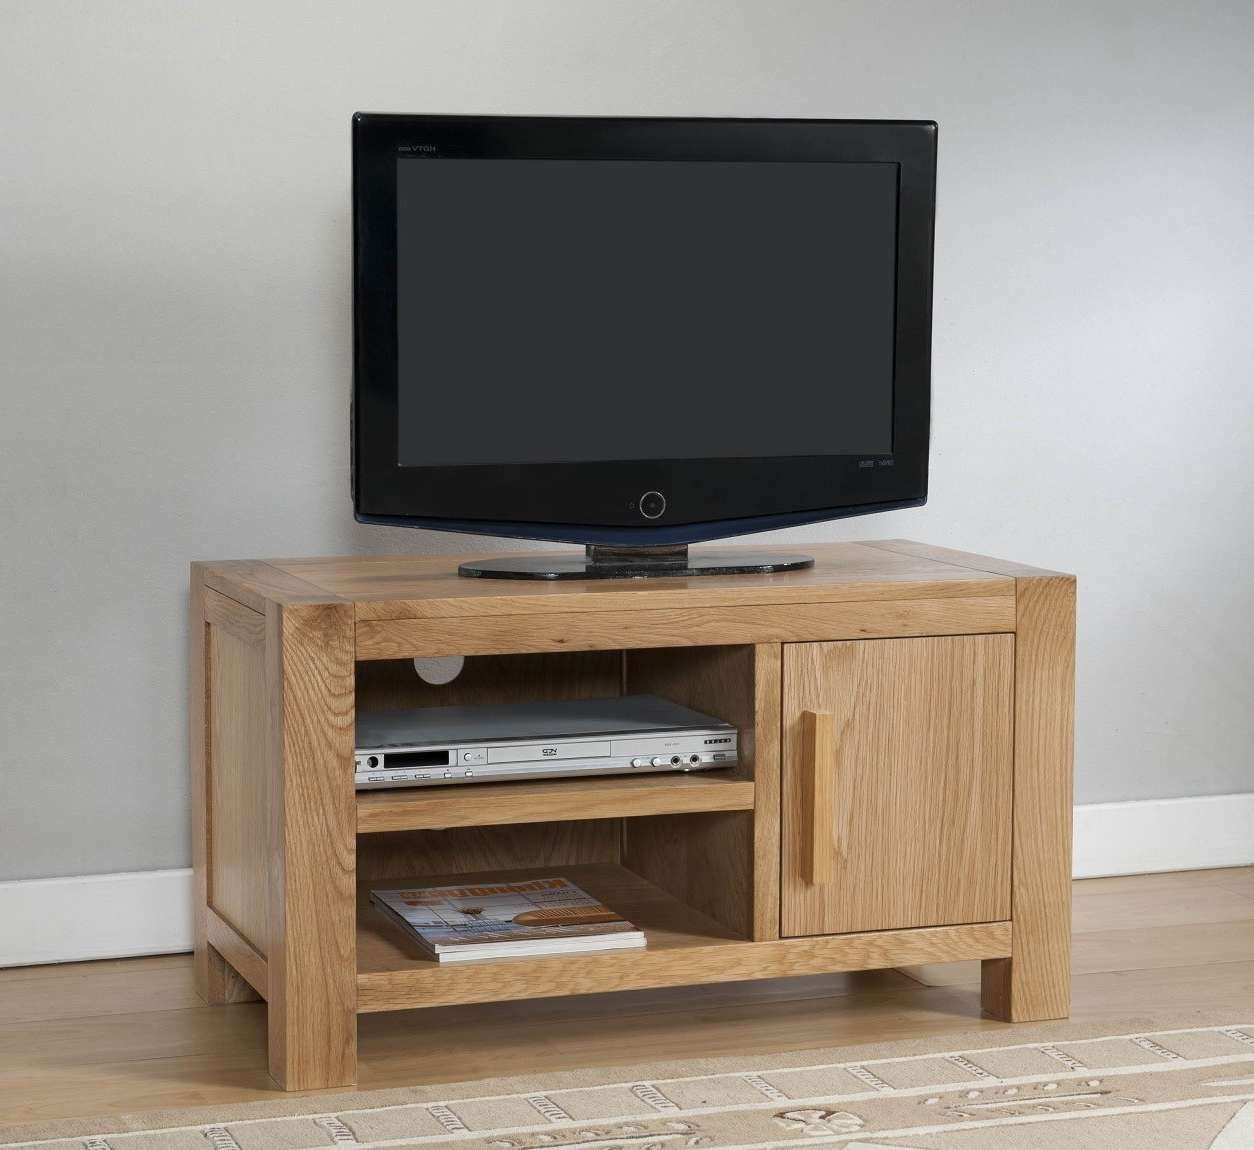 Aylesbury Contemporary Light Oak Small Tv Unit | Oak Furniture Uk Inside Contemporary Oak Tv Cabinets (View 3 of 20)